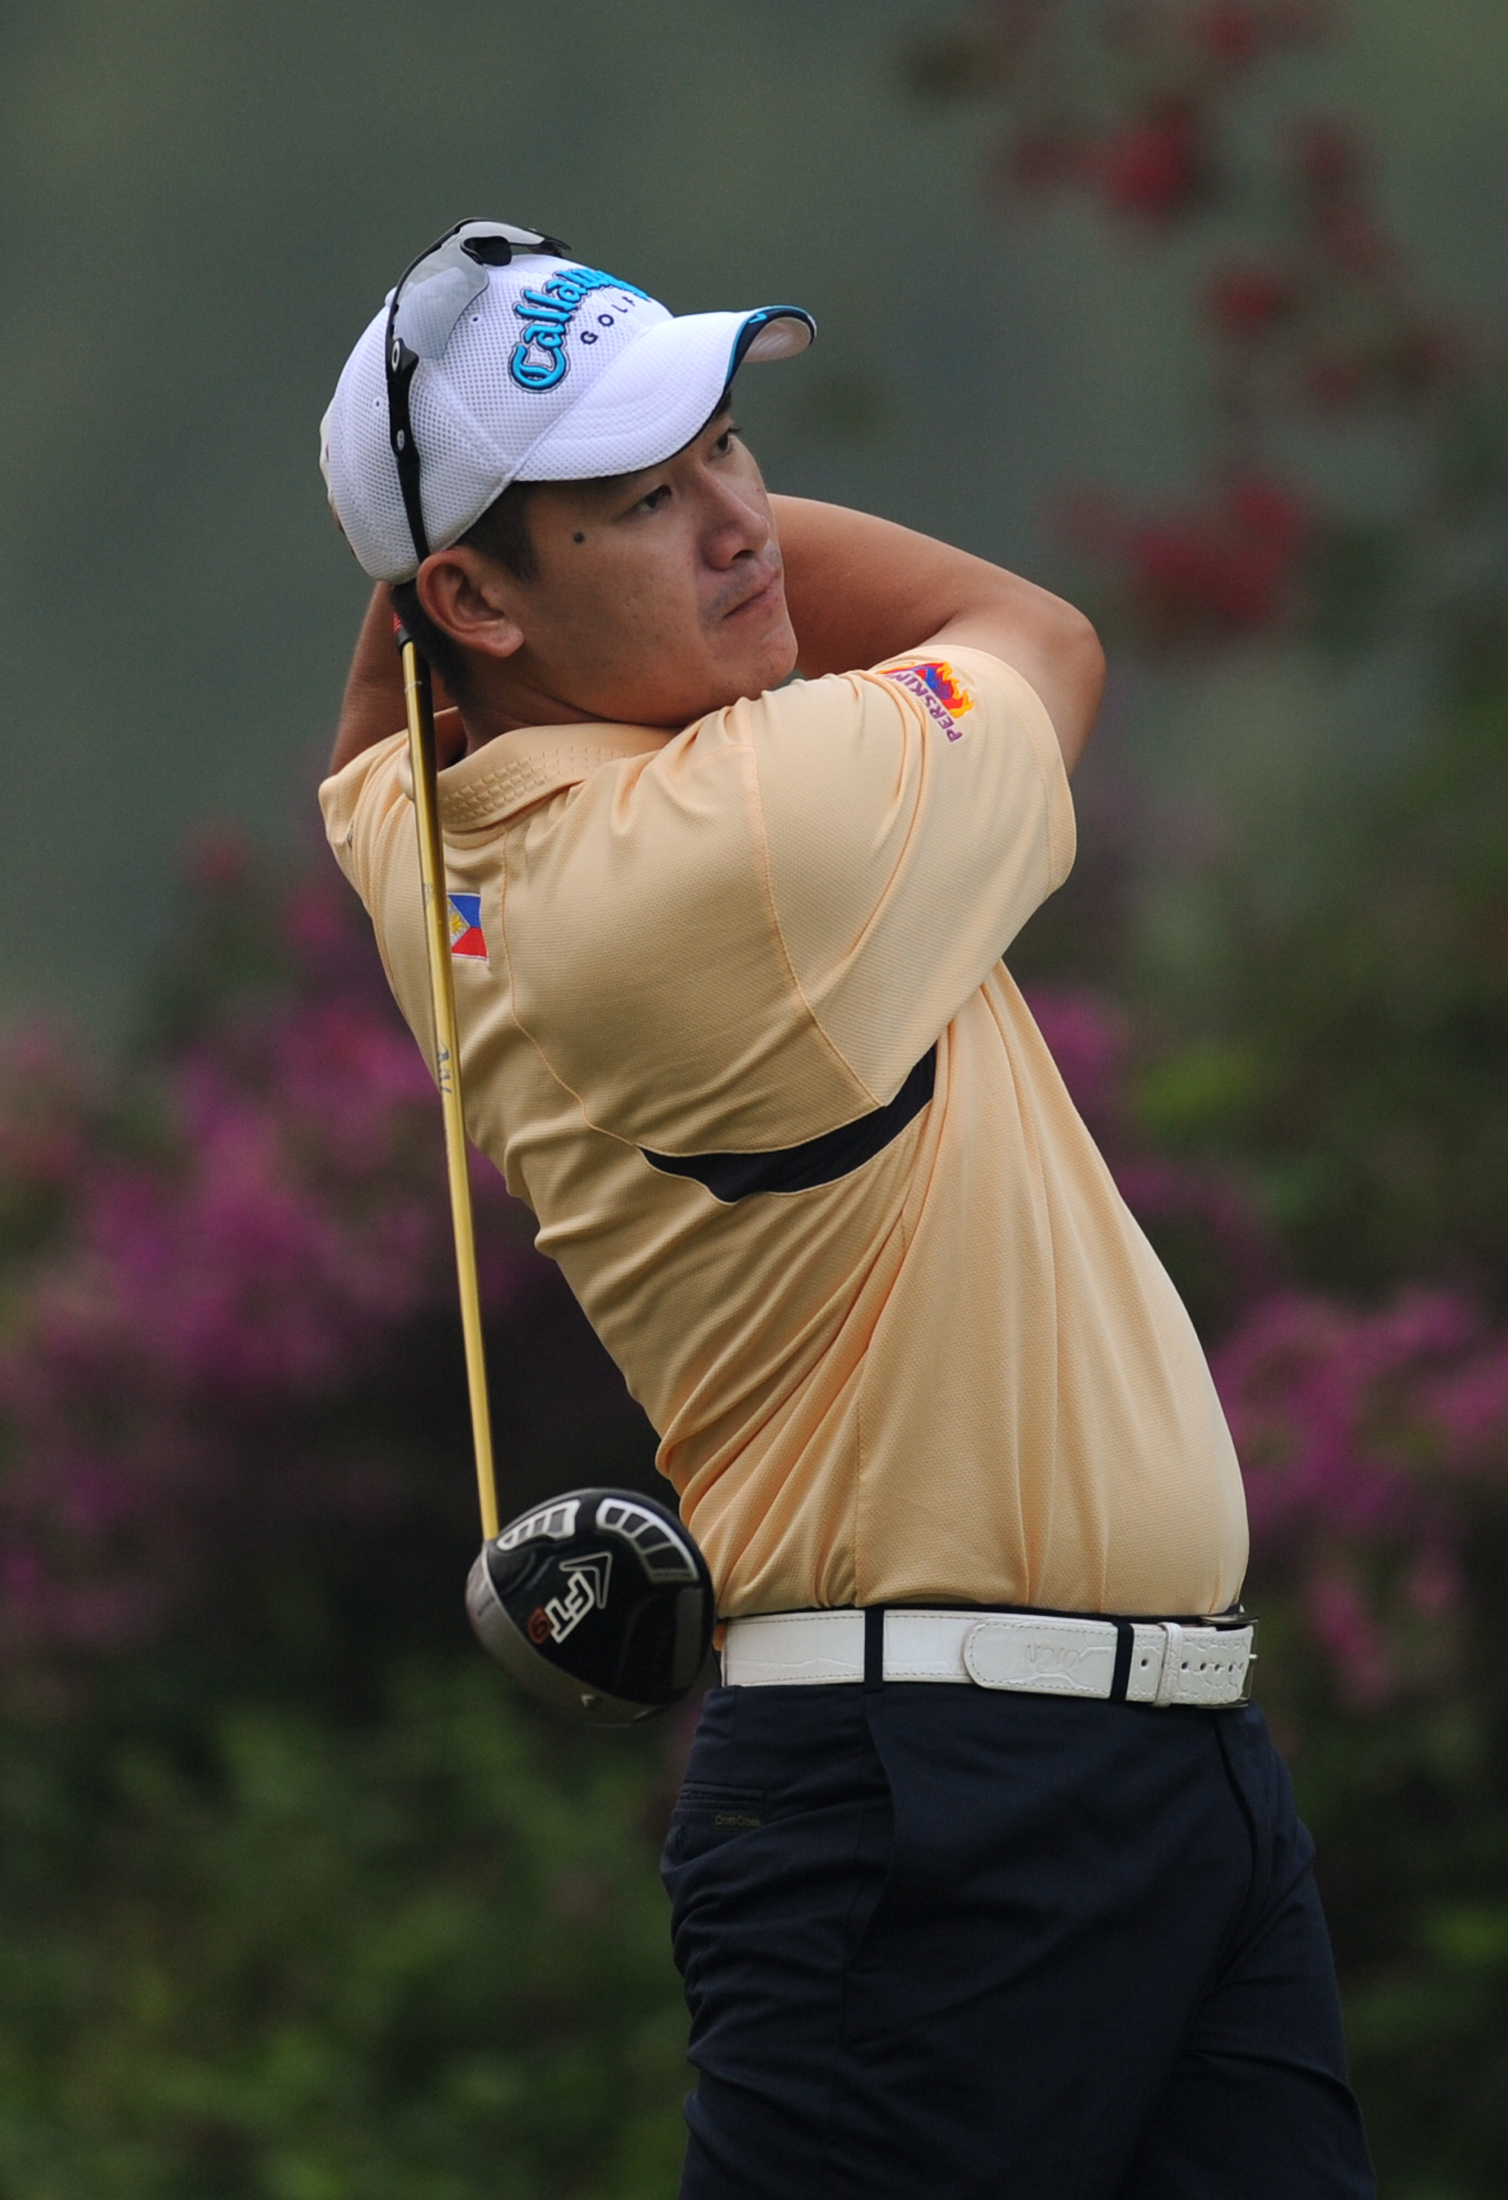 Angelo Que of Philippines tees off at the 1st hole during the first round of the Omega Mission Hills World Cup golf tournament in Dongguan, southern China's Guangdong province, Thursday, Nov. 26, 2009. (AP Photo/Kin Cheung)